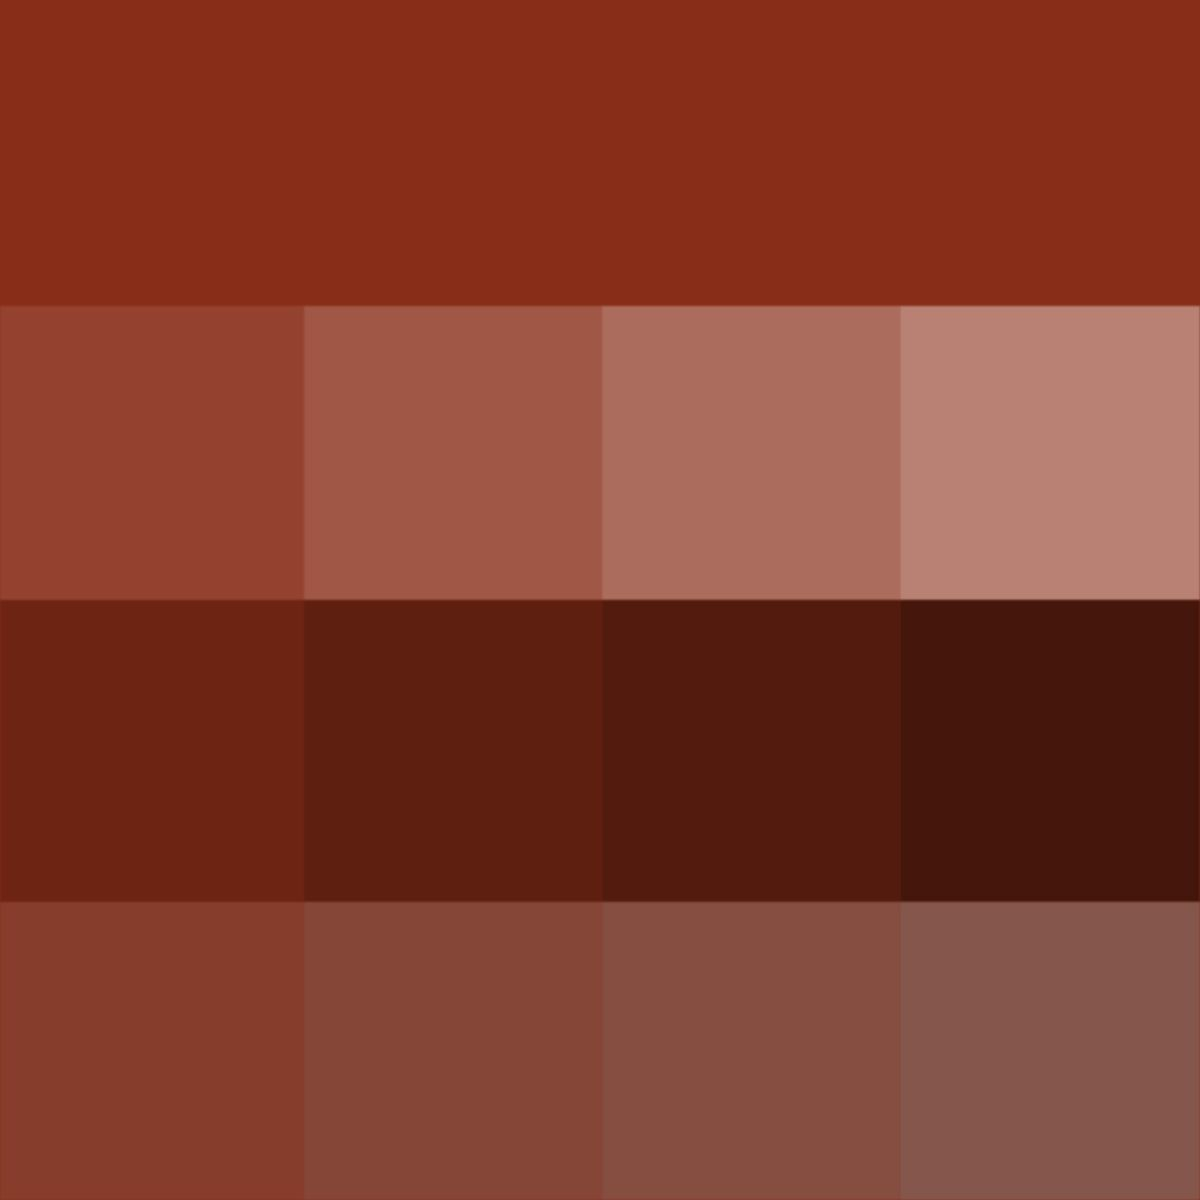 What Color Is Sienna >> Sienna Hue Tints Shades Tones Hue Pure Color With